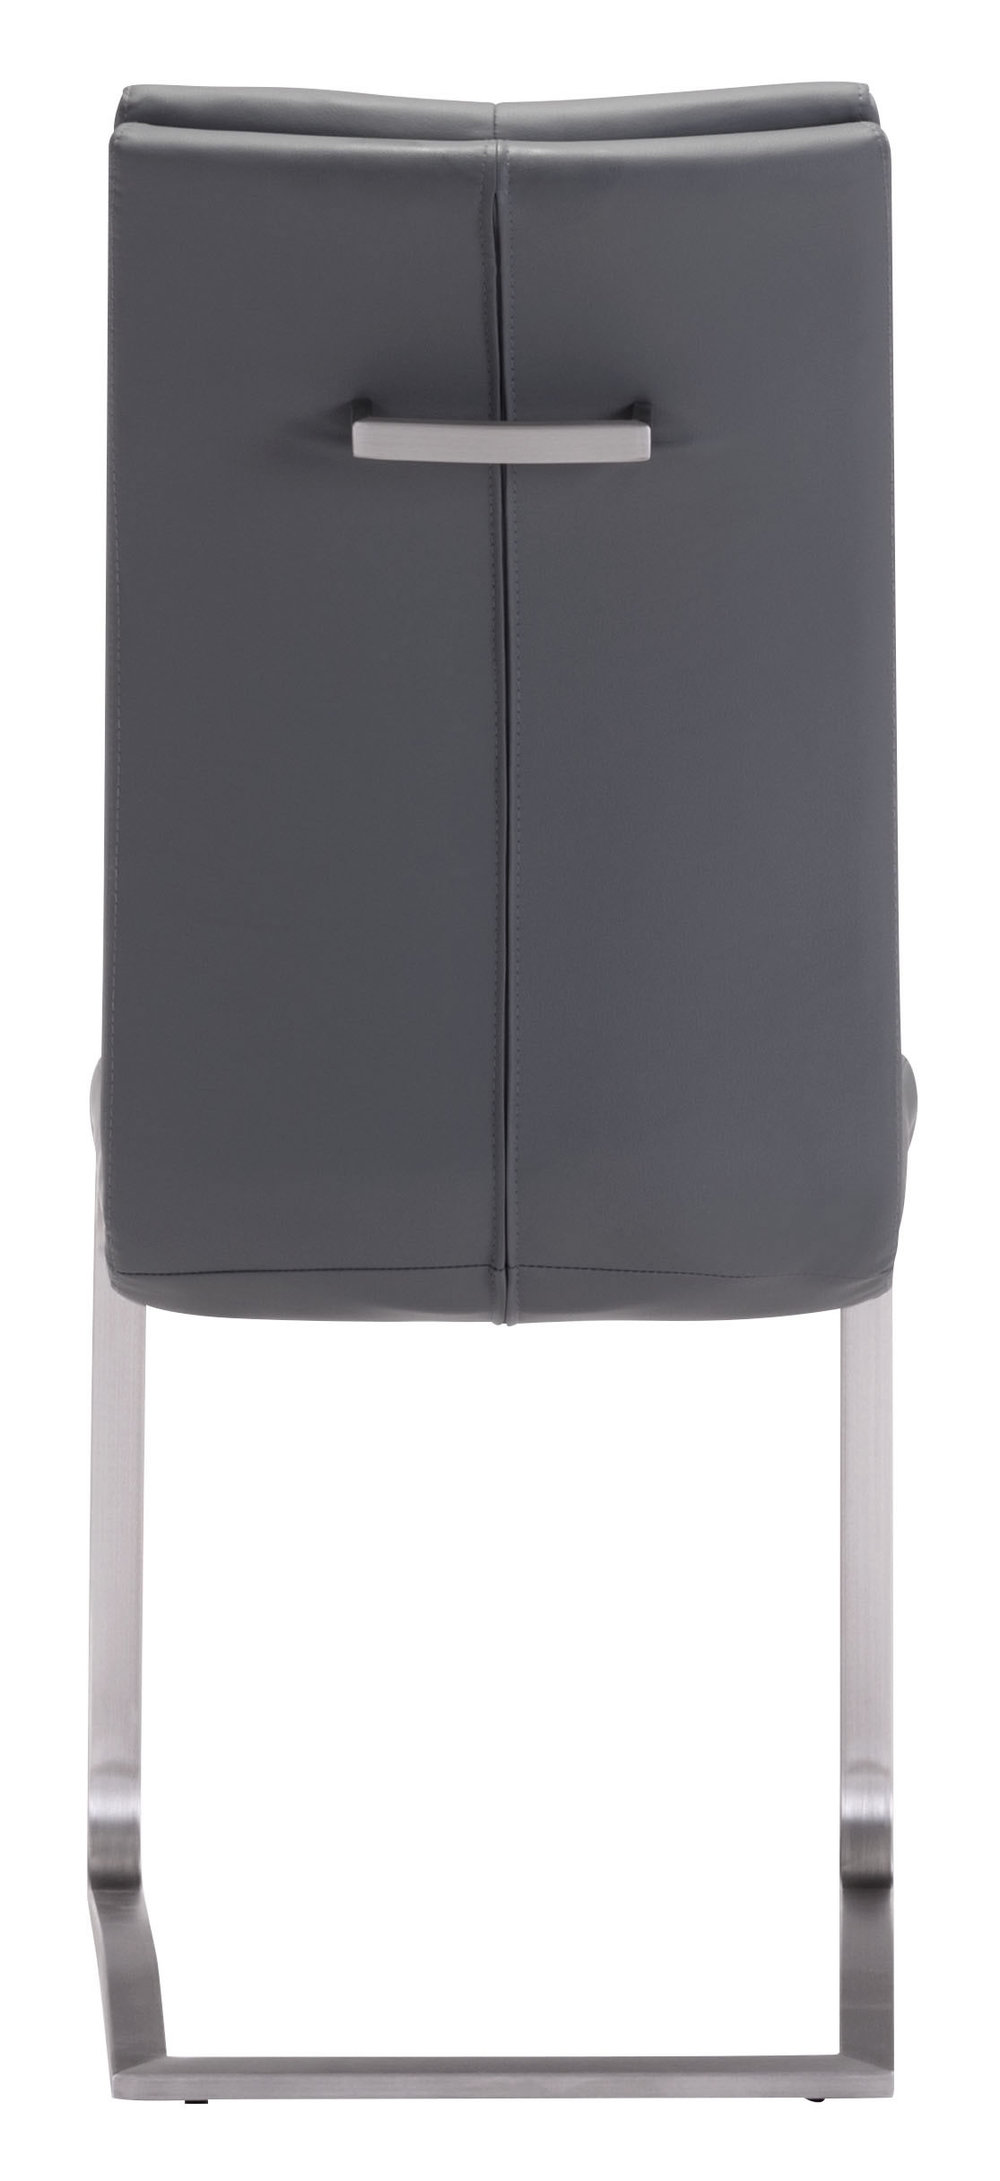 Zuo Modern Contemporary - Rosemont Dining Chair - Set of 2 - Gray